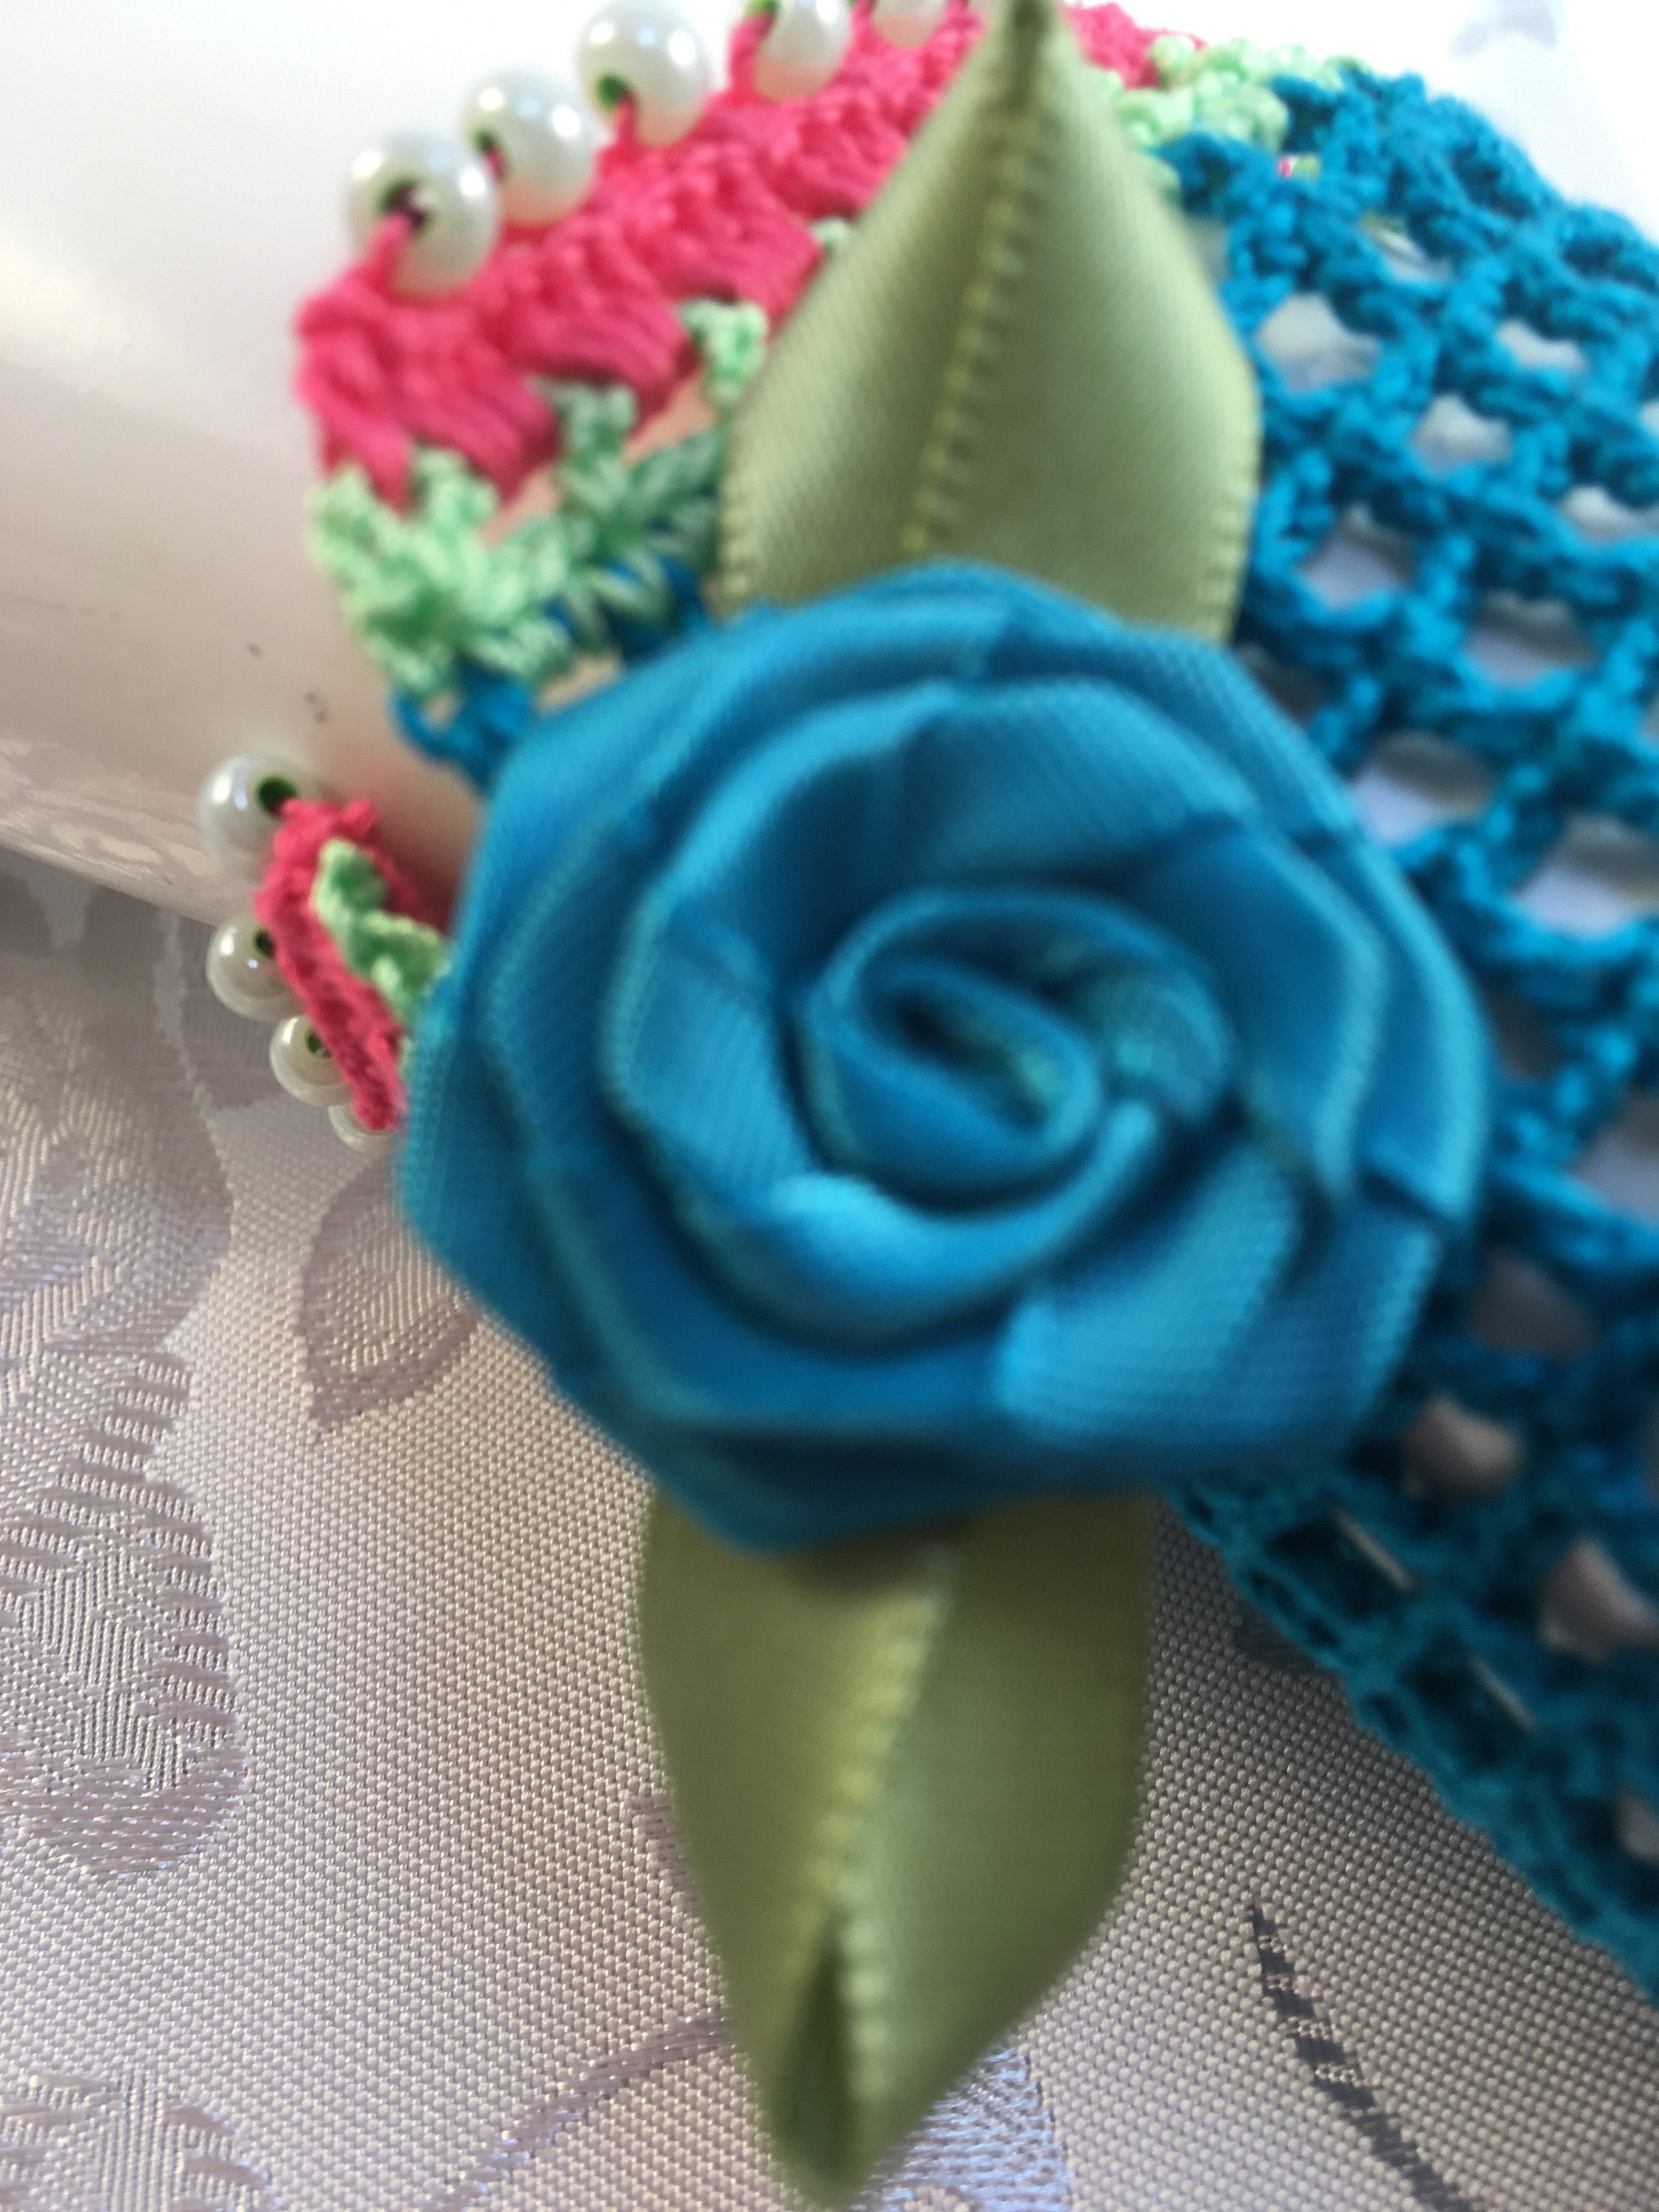 New items from the Crochet Maven, exclusively for Woolley Weaves Crochet